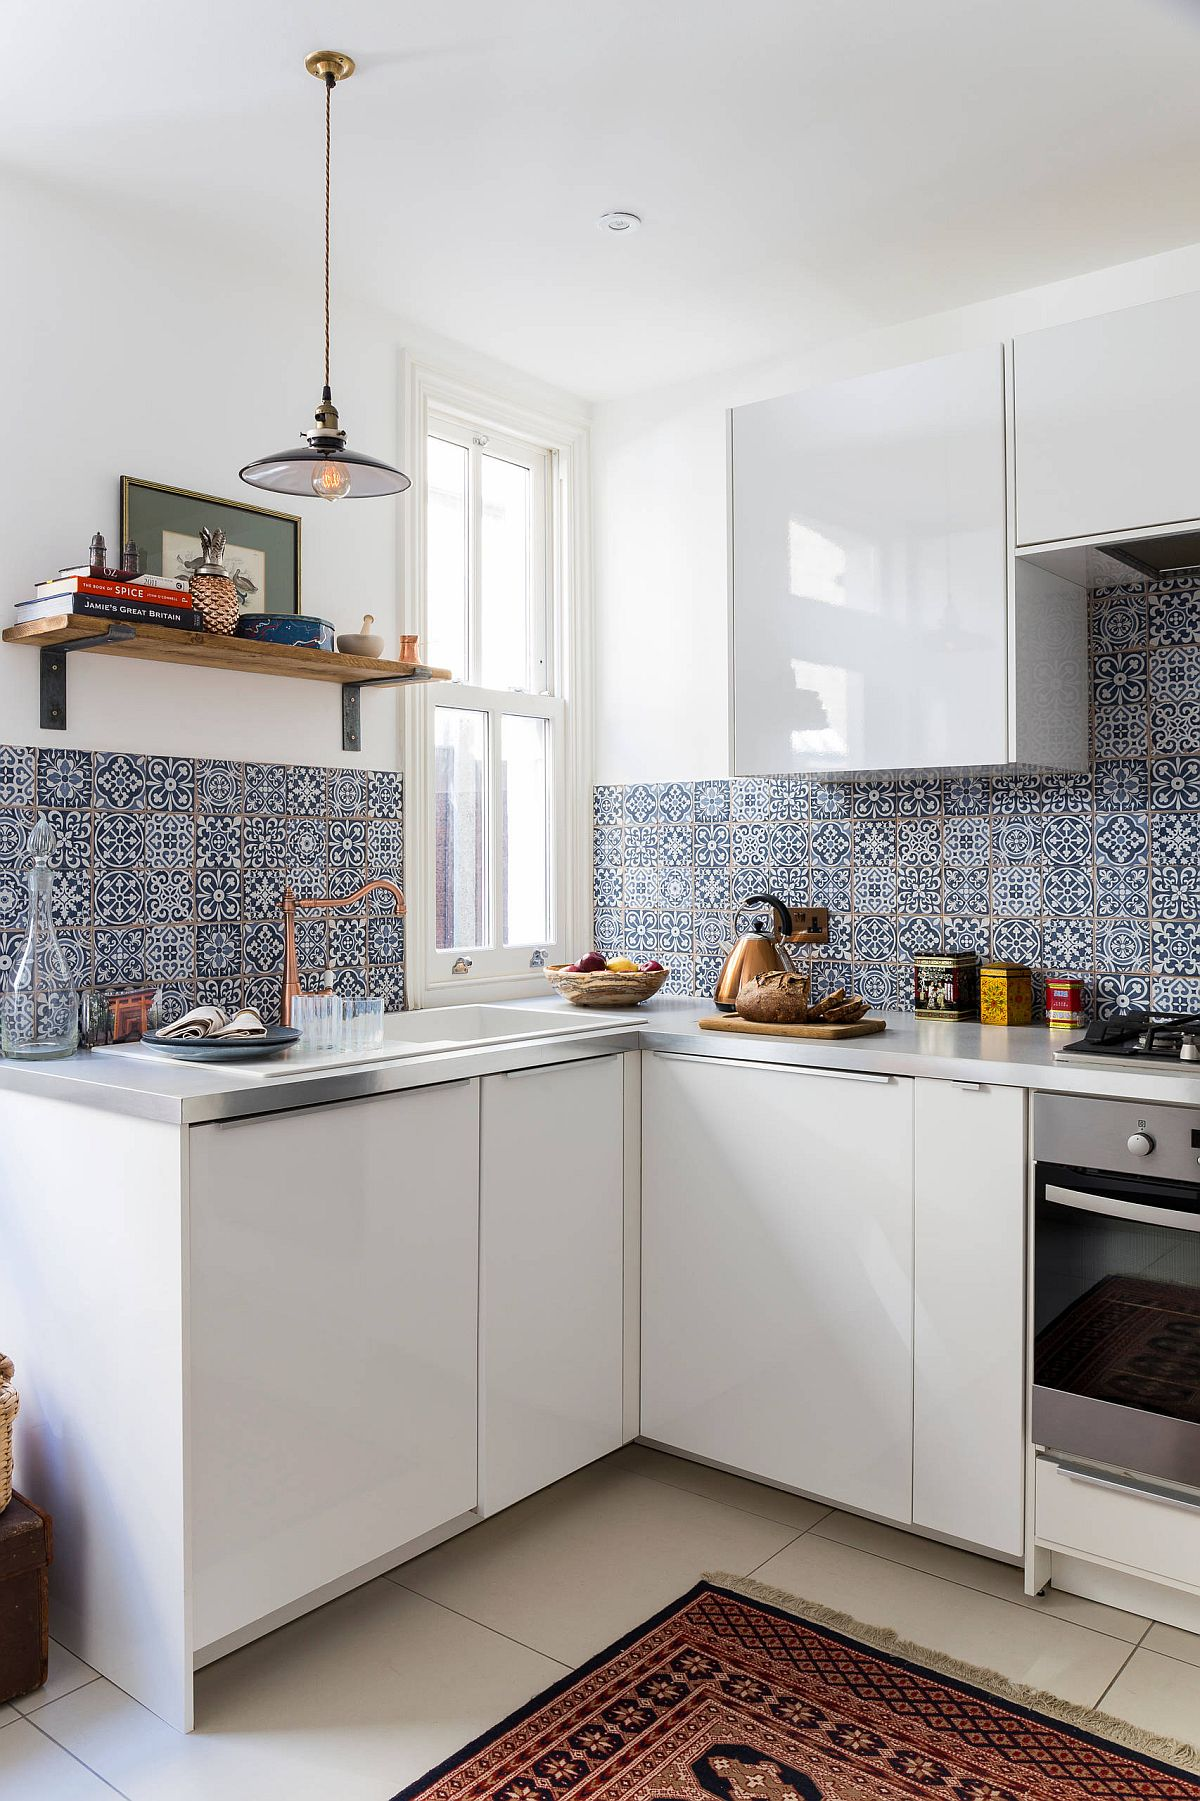 Tiles-bring-pattern-to-the-backdrop-without-altering-the-color-scheme-of-the-small-eclectic-kitchen-30766